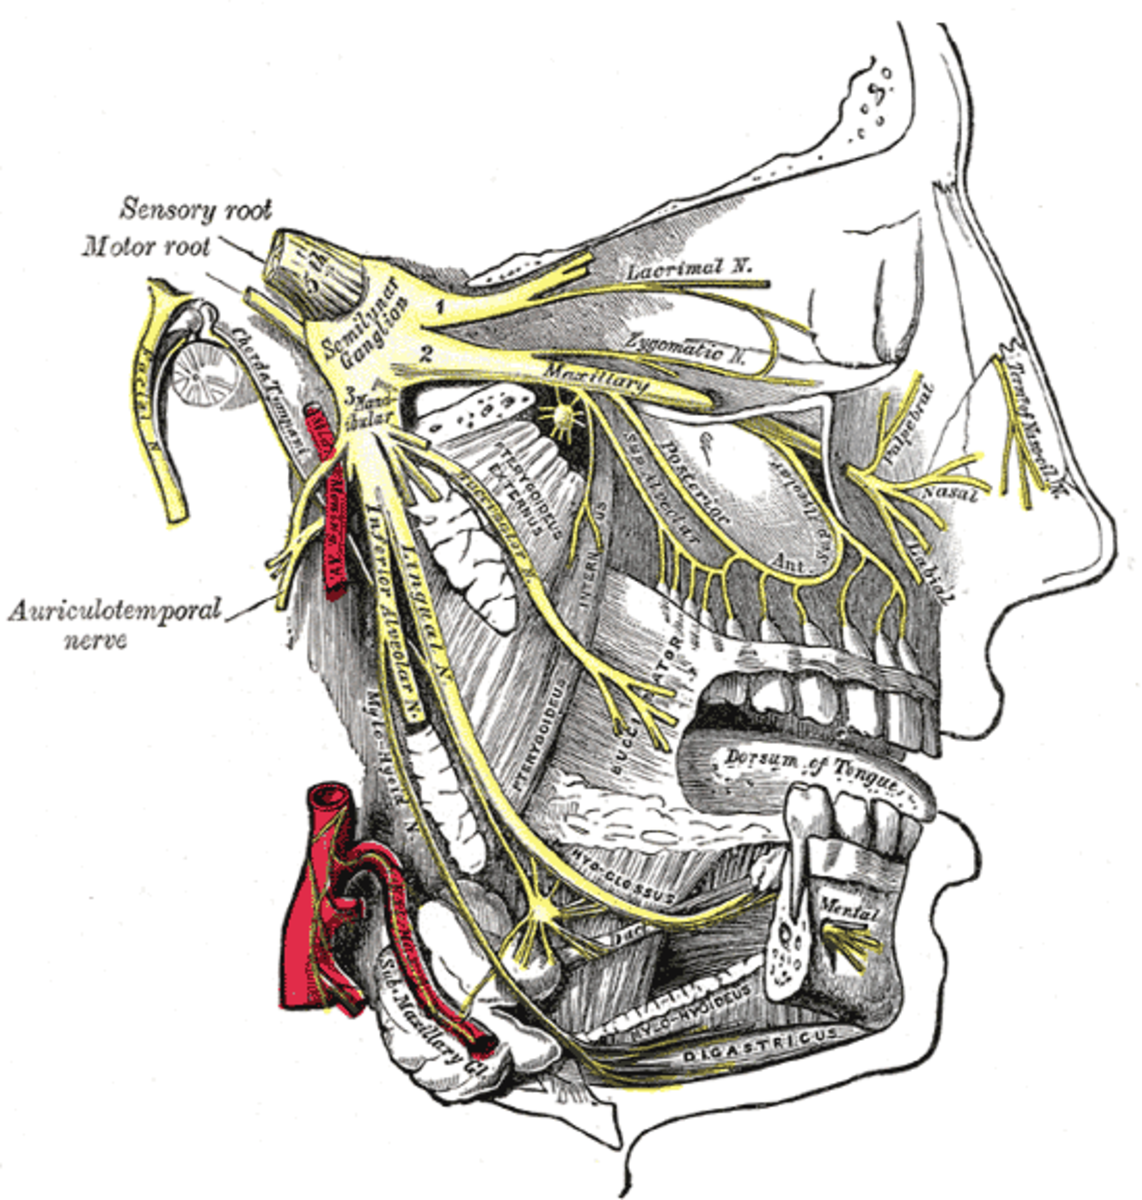 This illustration shows the trigeminal nerve's three major branches extending into the facial areas.